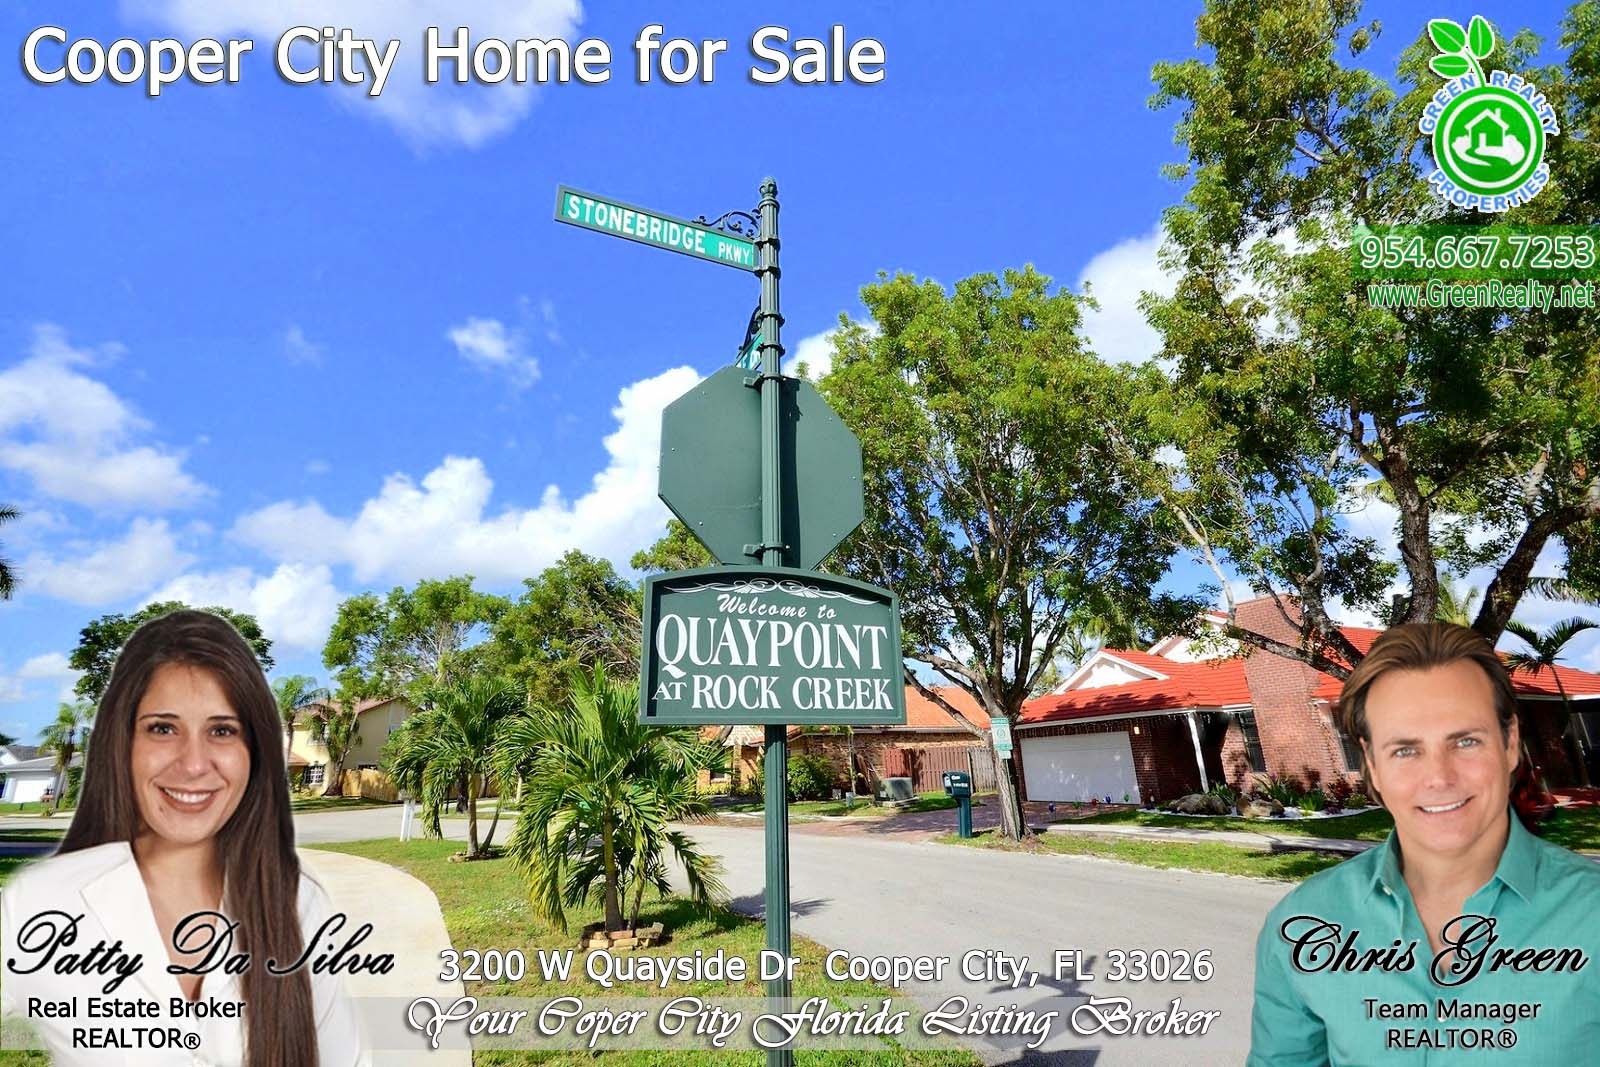 42 Cooper City Homes For Sale (1)